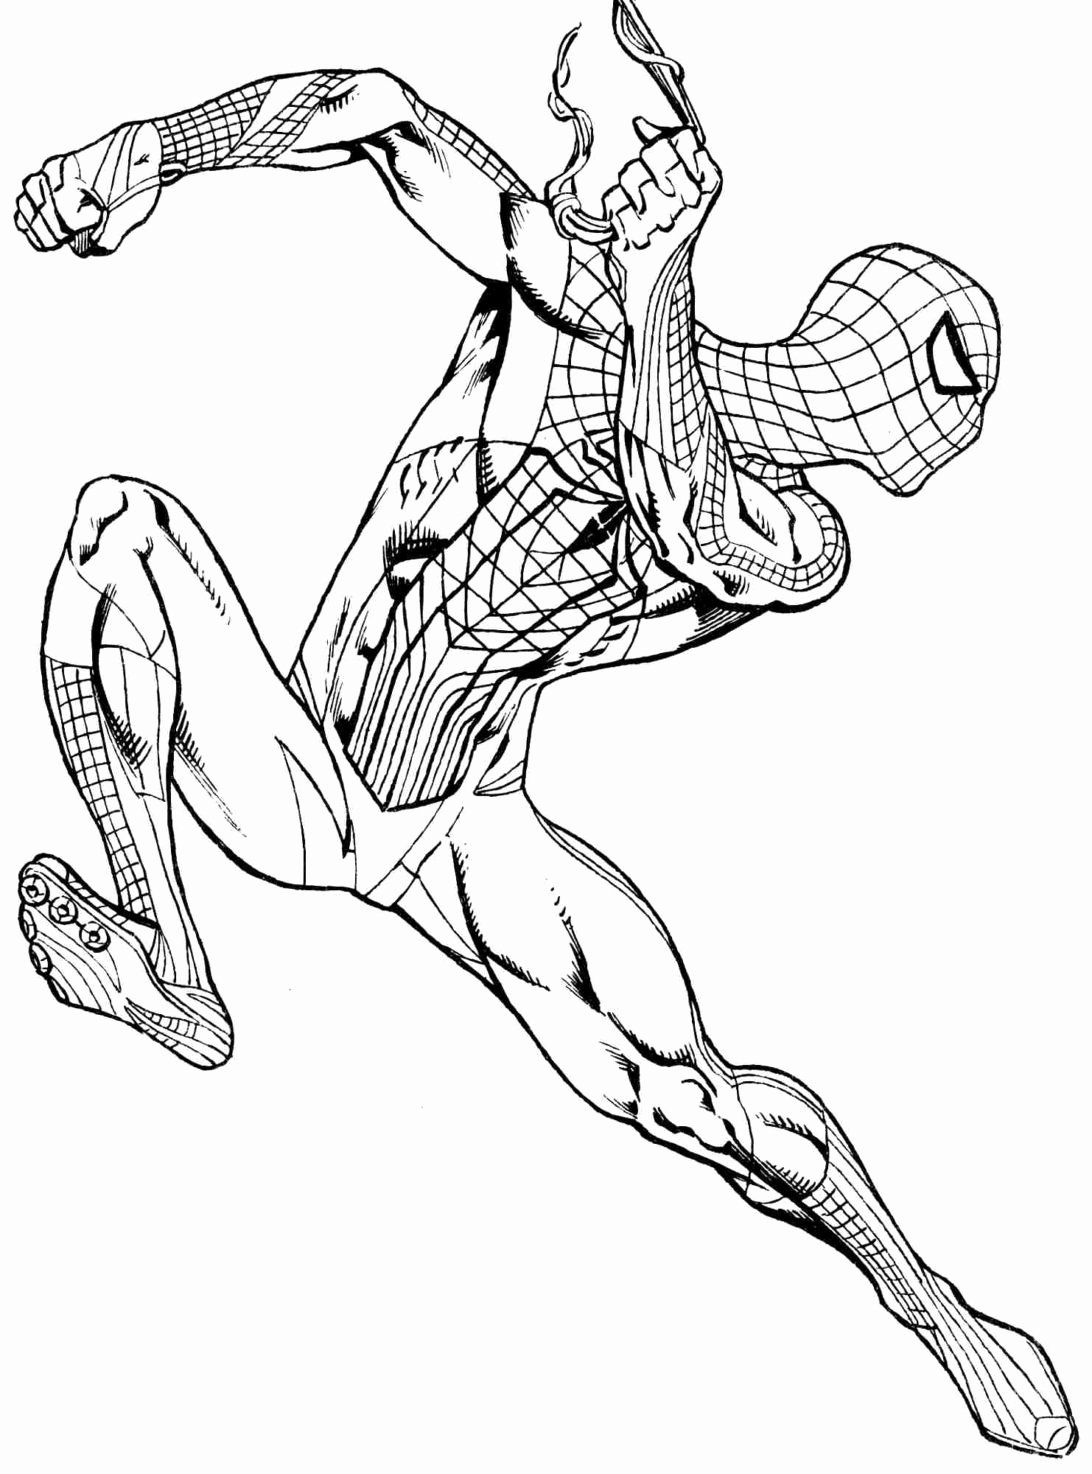 Miles Morales Coloring Page Lovely Top 12 Blue Chip Coloring Pages Most First Rate Spiderman In 2020 Spiderman Coloring Cool Coloring Pages Coloring Pages